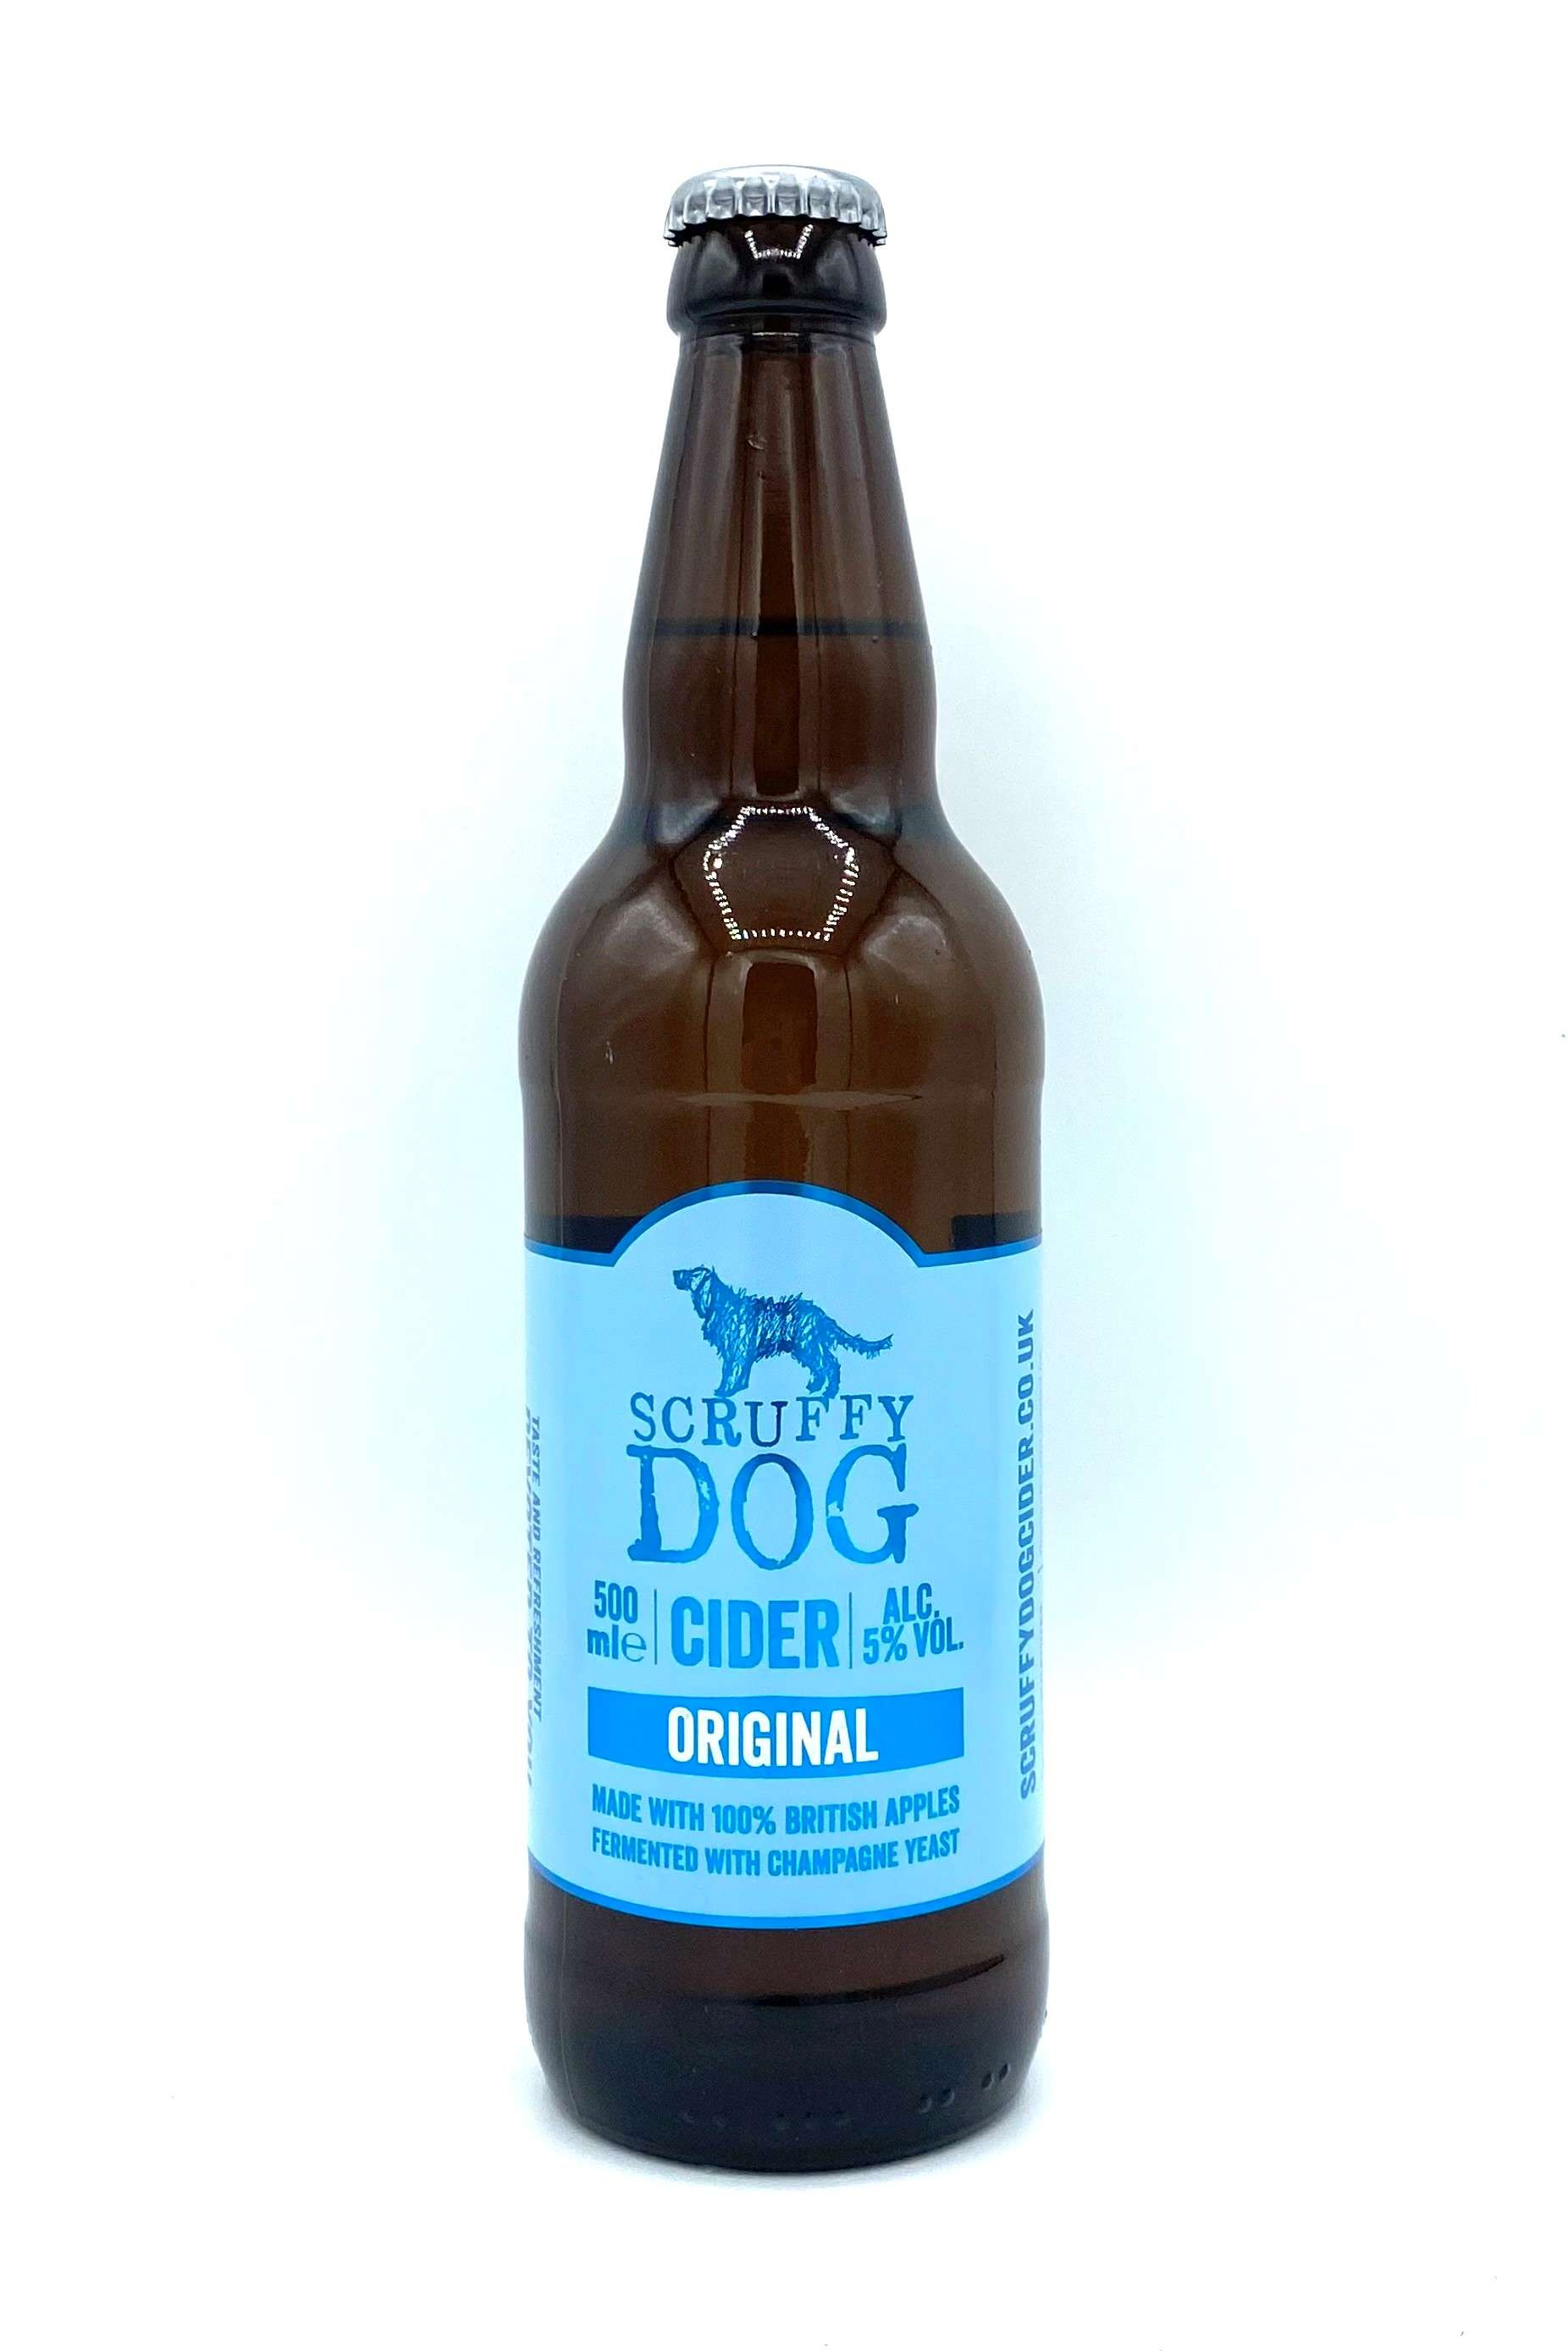 Scruffy Dog Original Cider